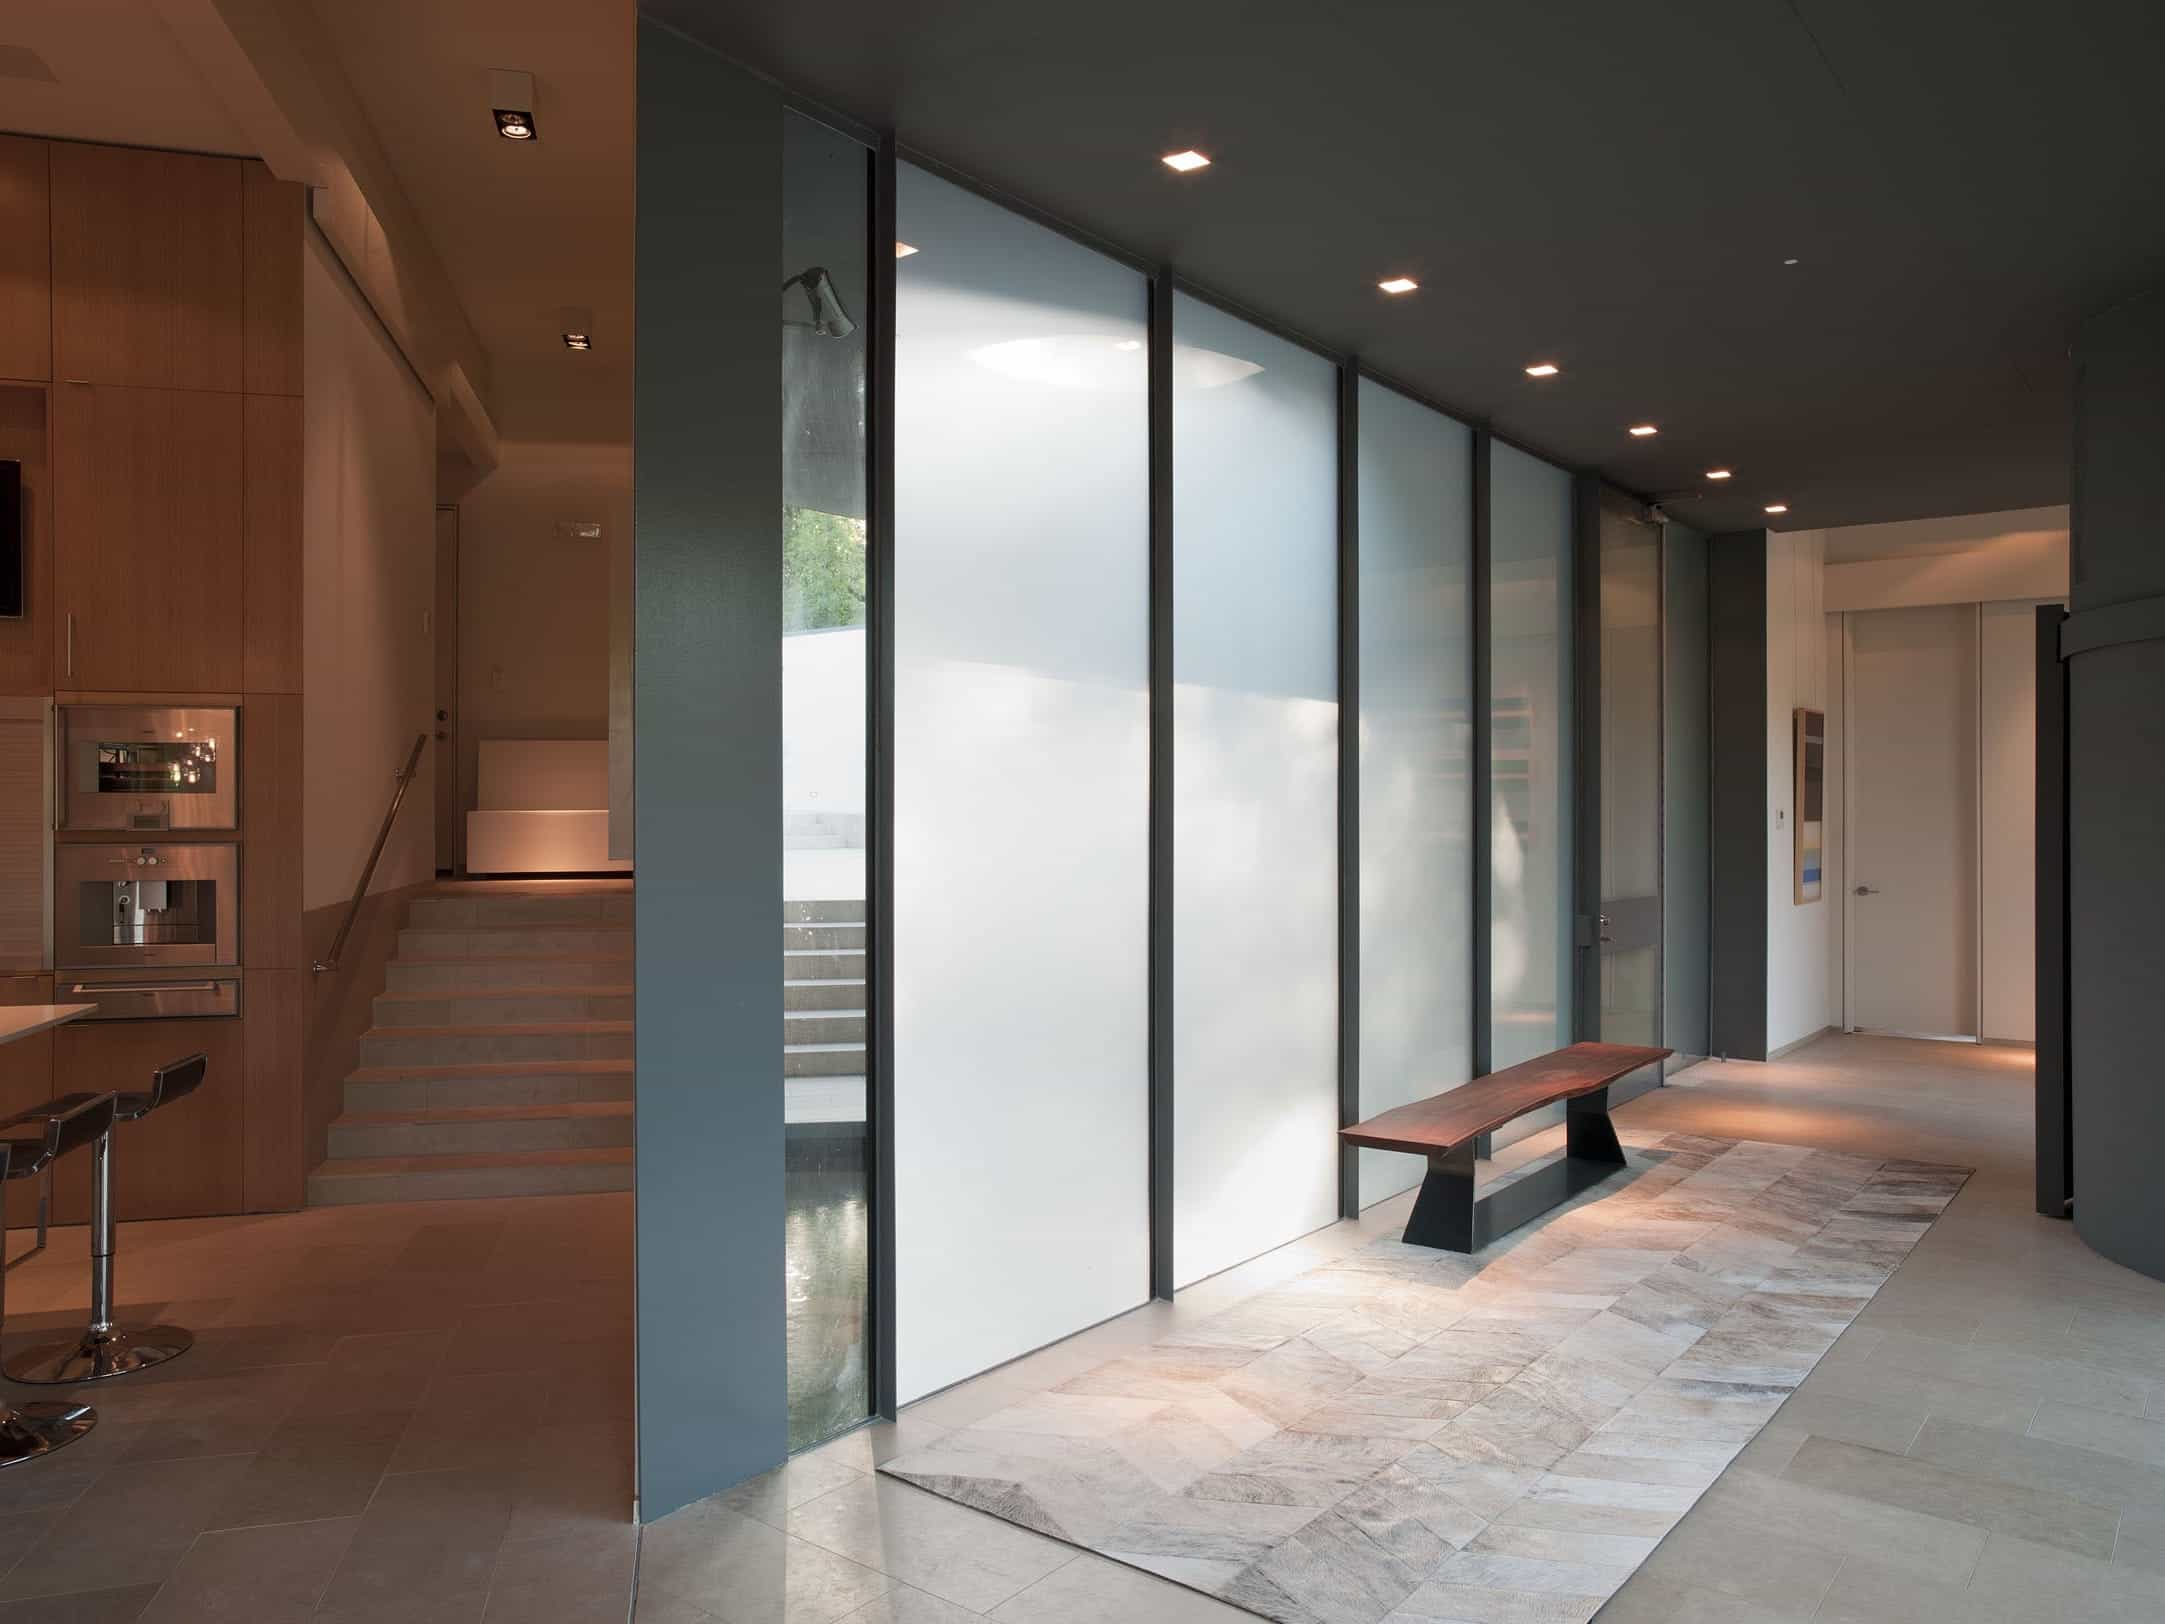 Modern Charcoal Gray Hall With Frosted Sliding Glass Panels (Image 15 of 27)